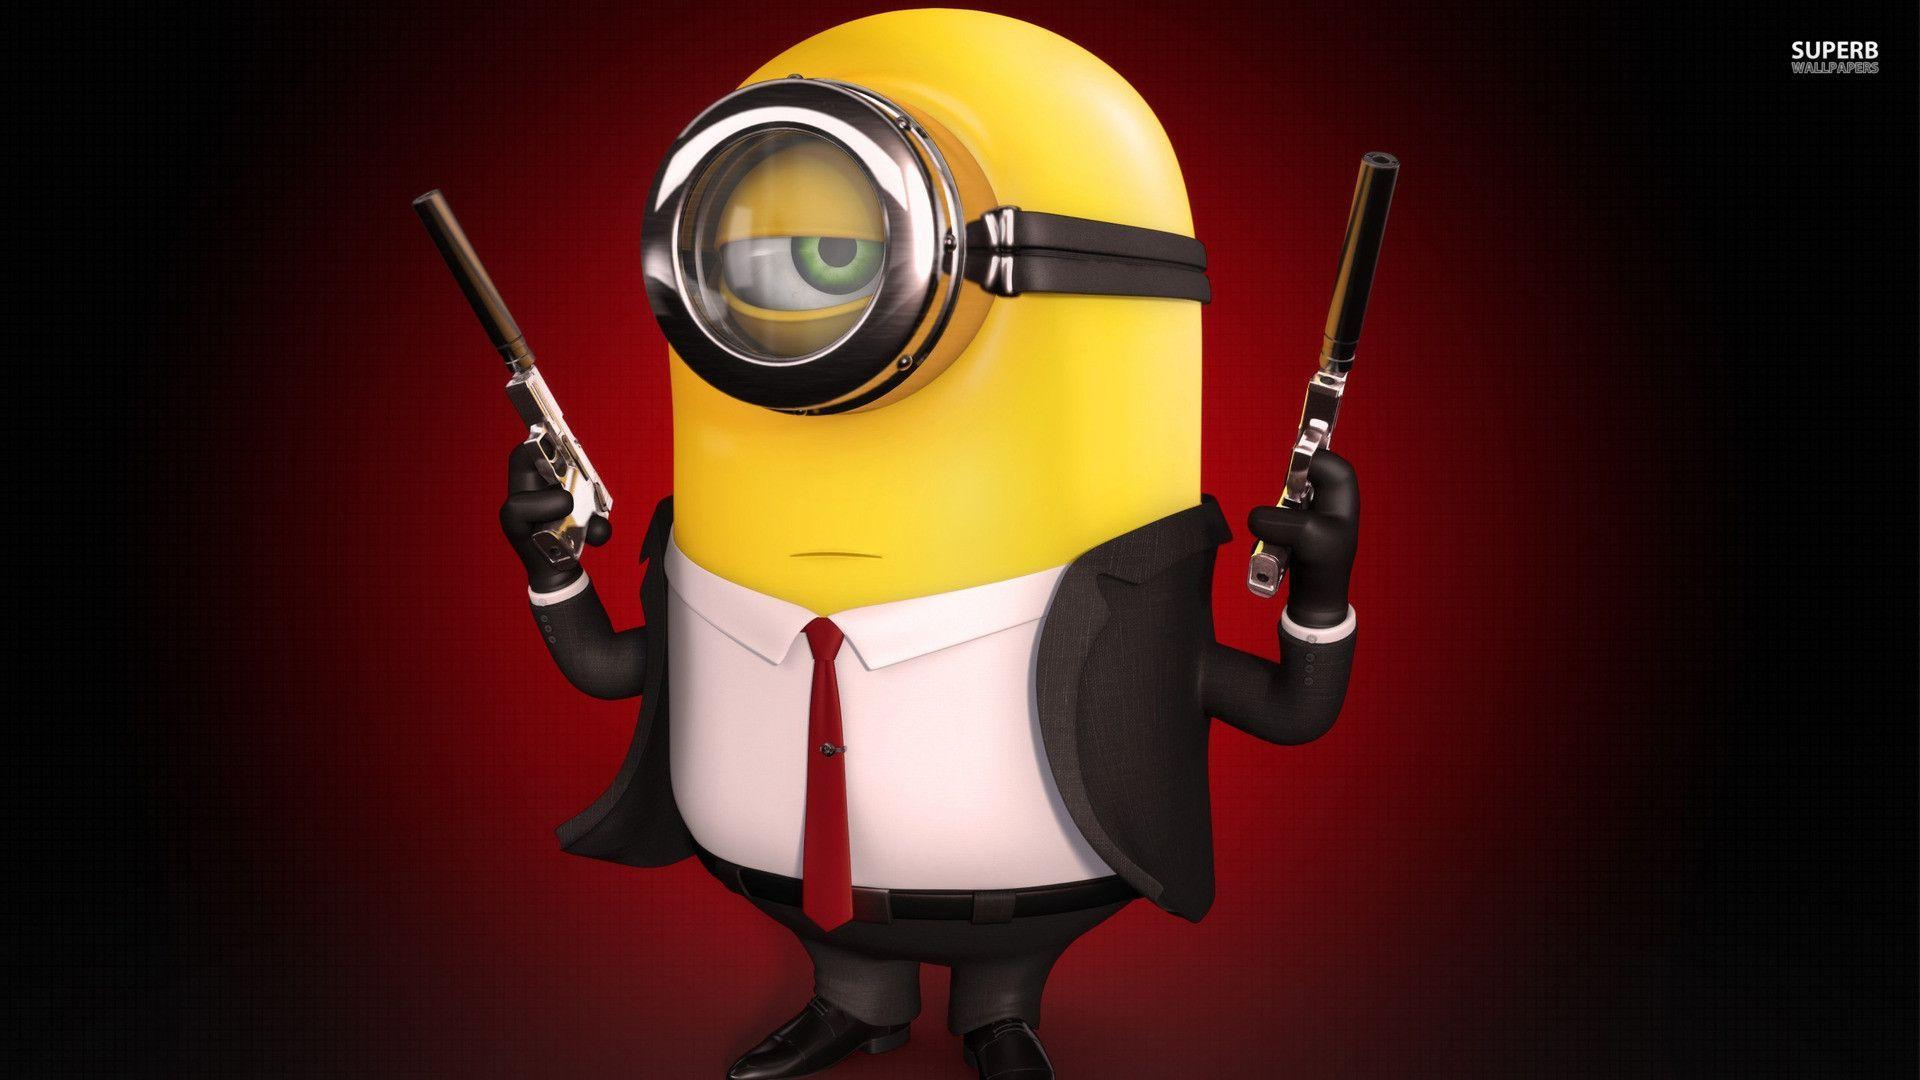 Hitman minion wallpaper - Digital Art wallpapers - #